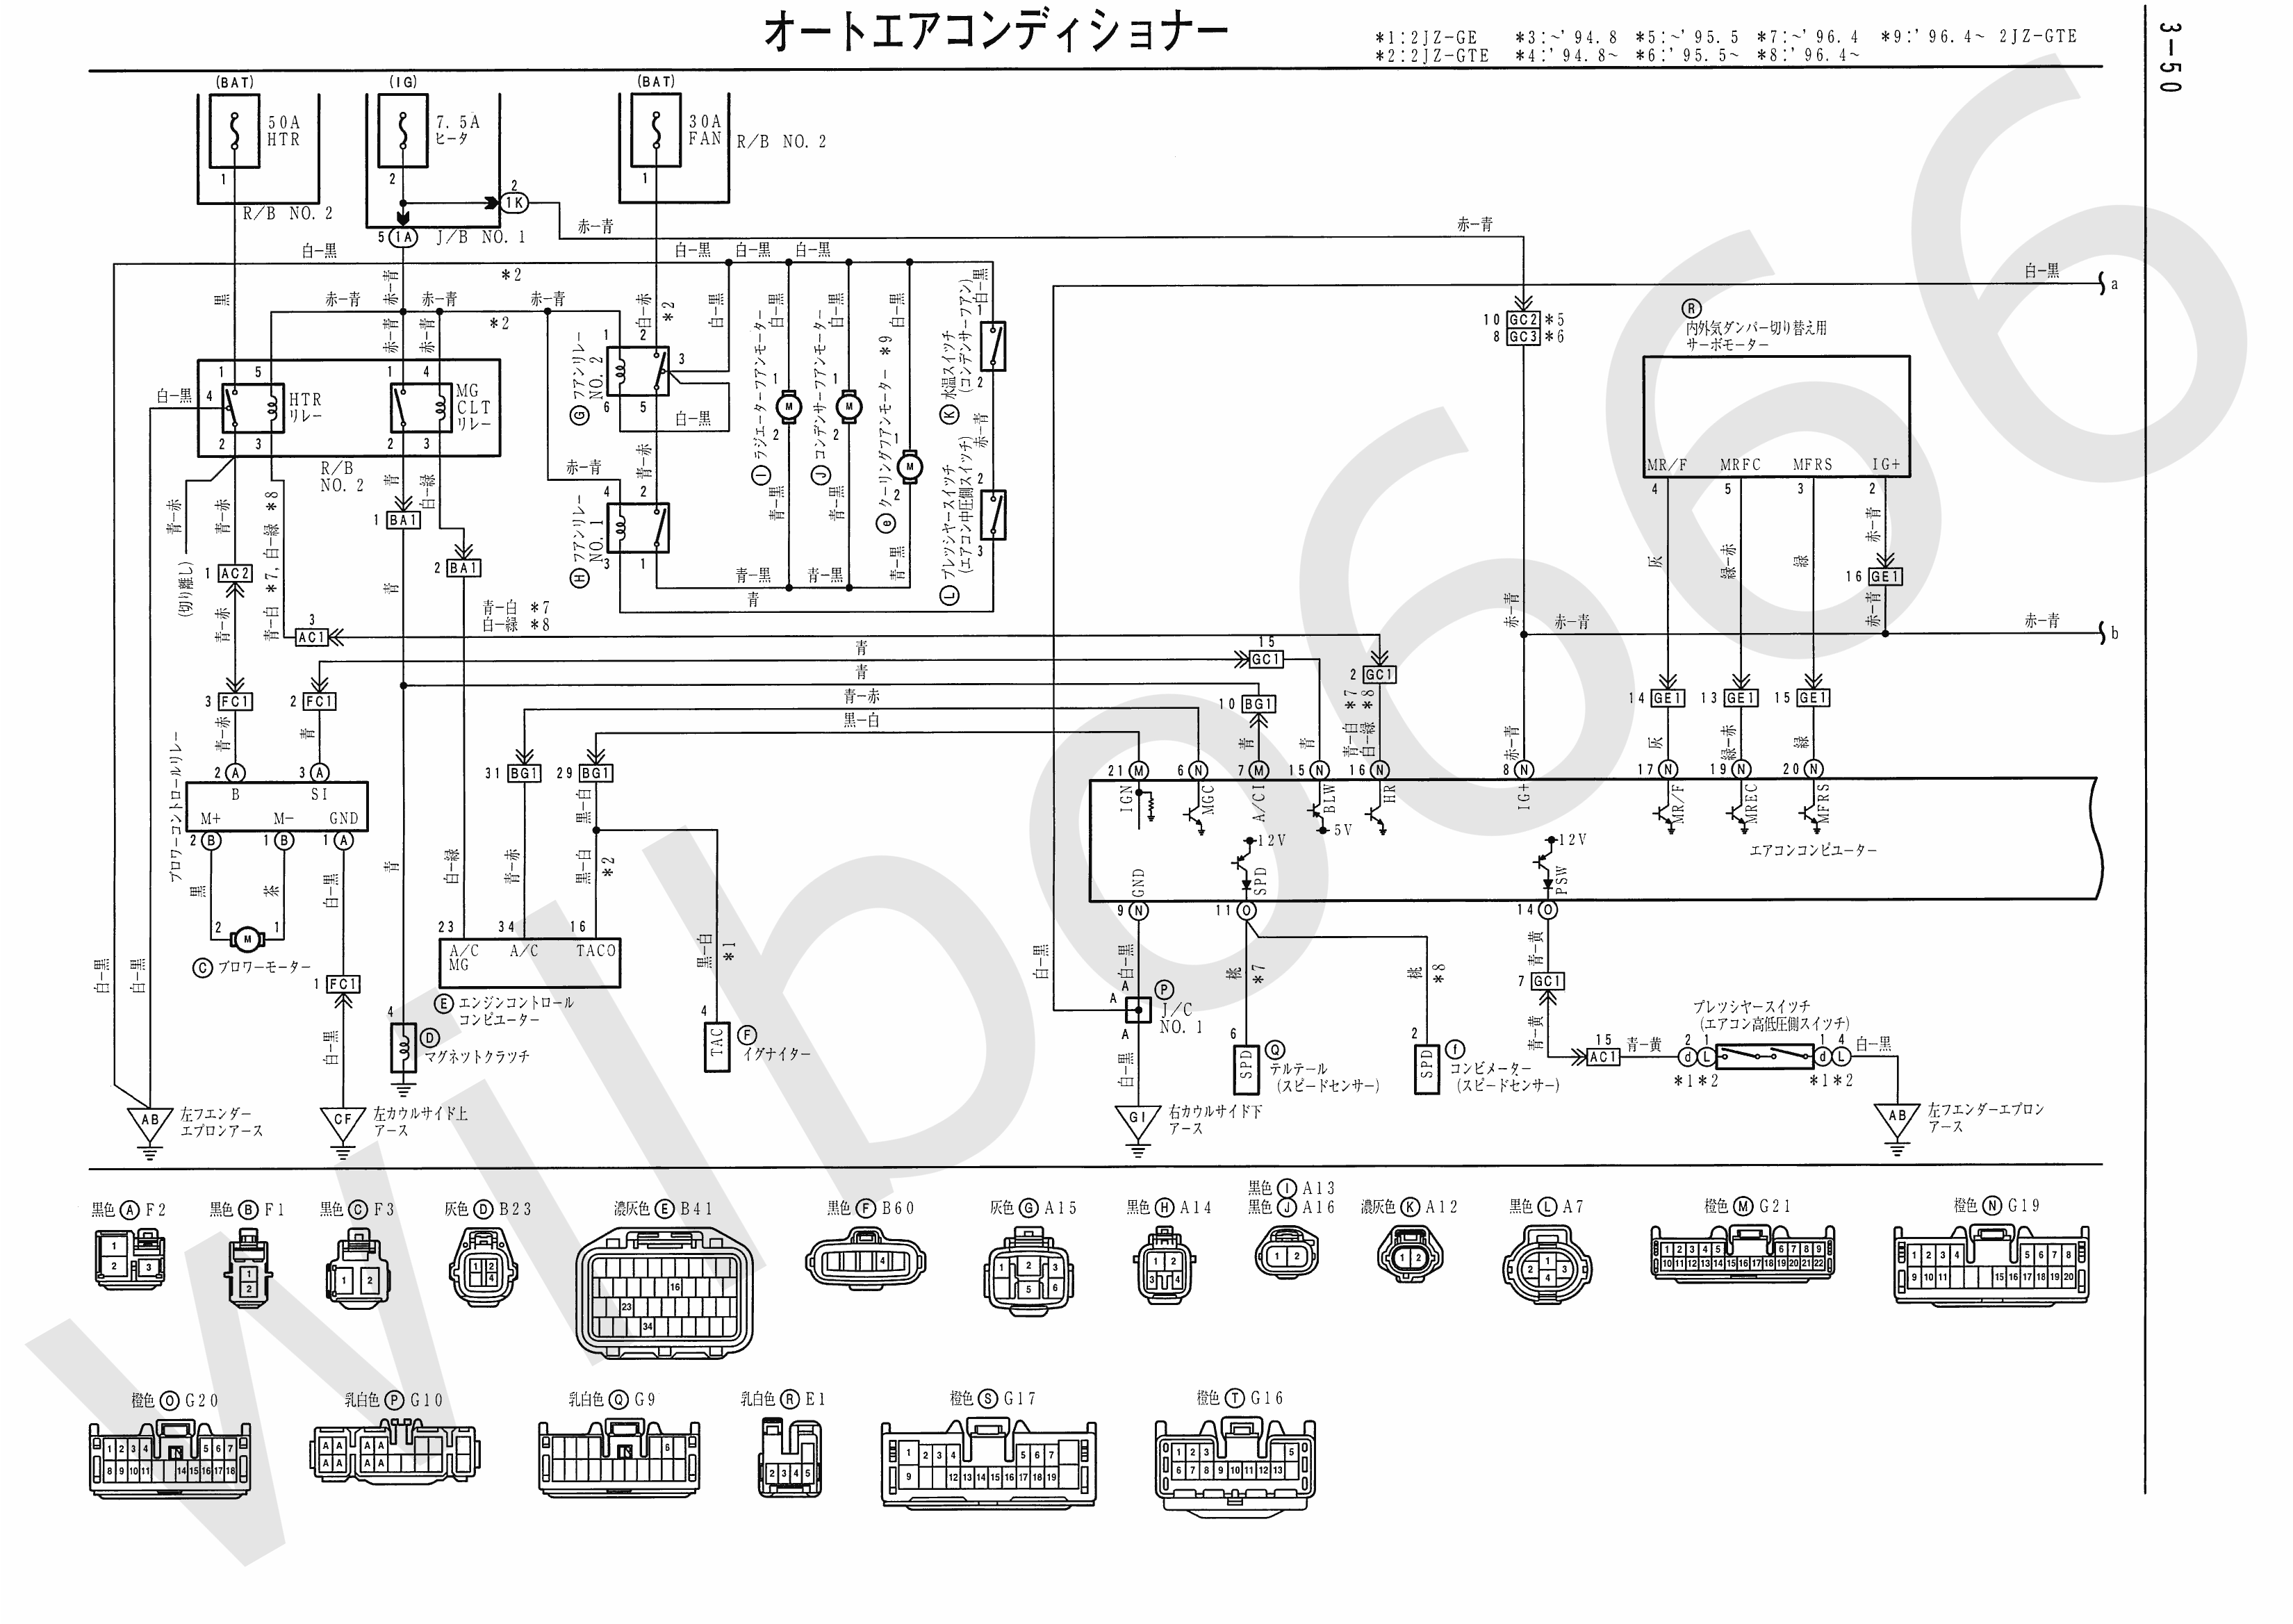 JZA80 Electrical Wiring Diagram 6742505 3 50 wilbo666 2jz ge jza80 supra engine wiring Lexus SC300 Engine at soozxer.org